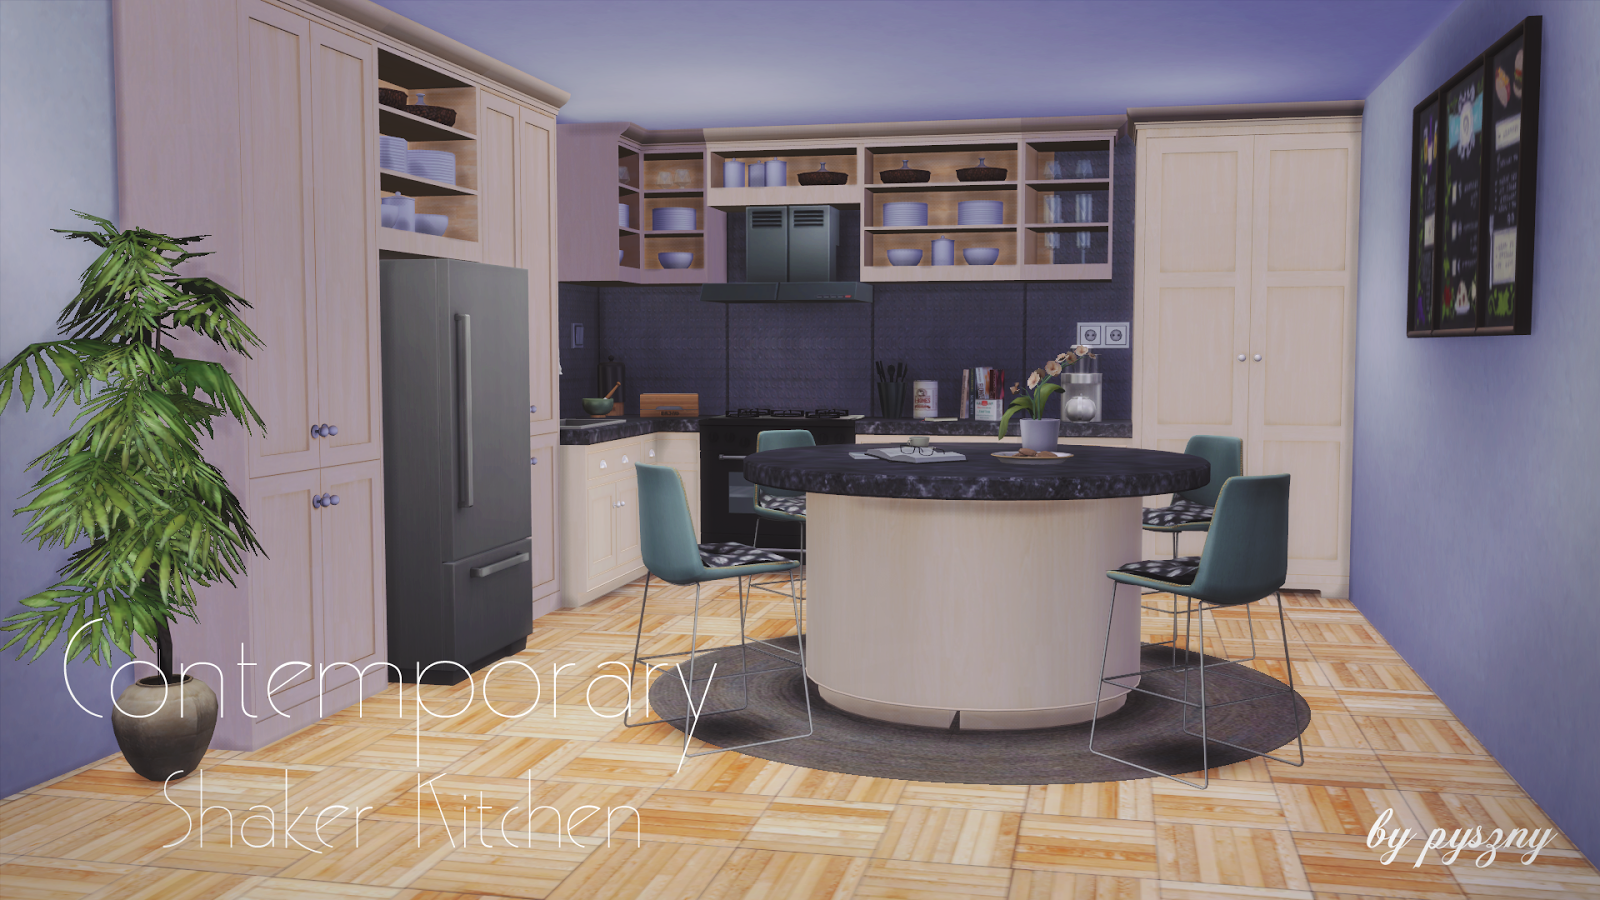 Sims Kitchen My Sims 4 Blog Contemporary Shaker Kitchen Set By Pyszny